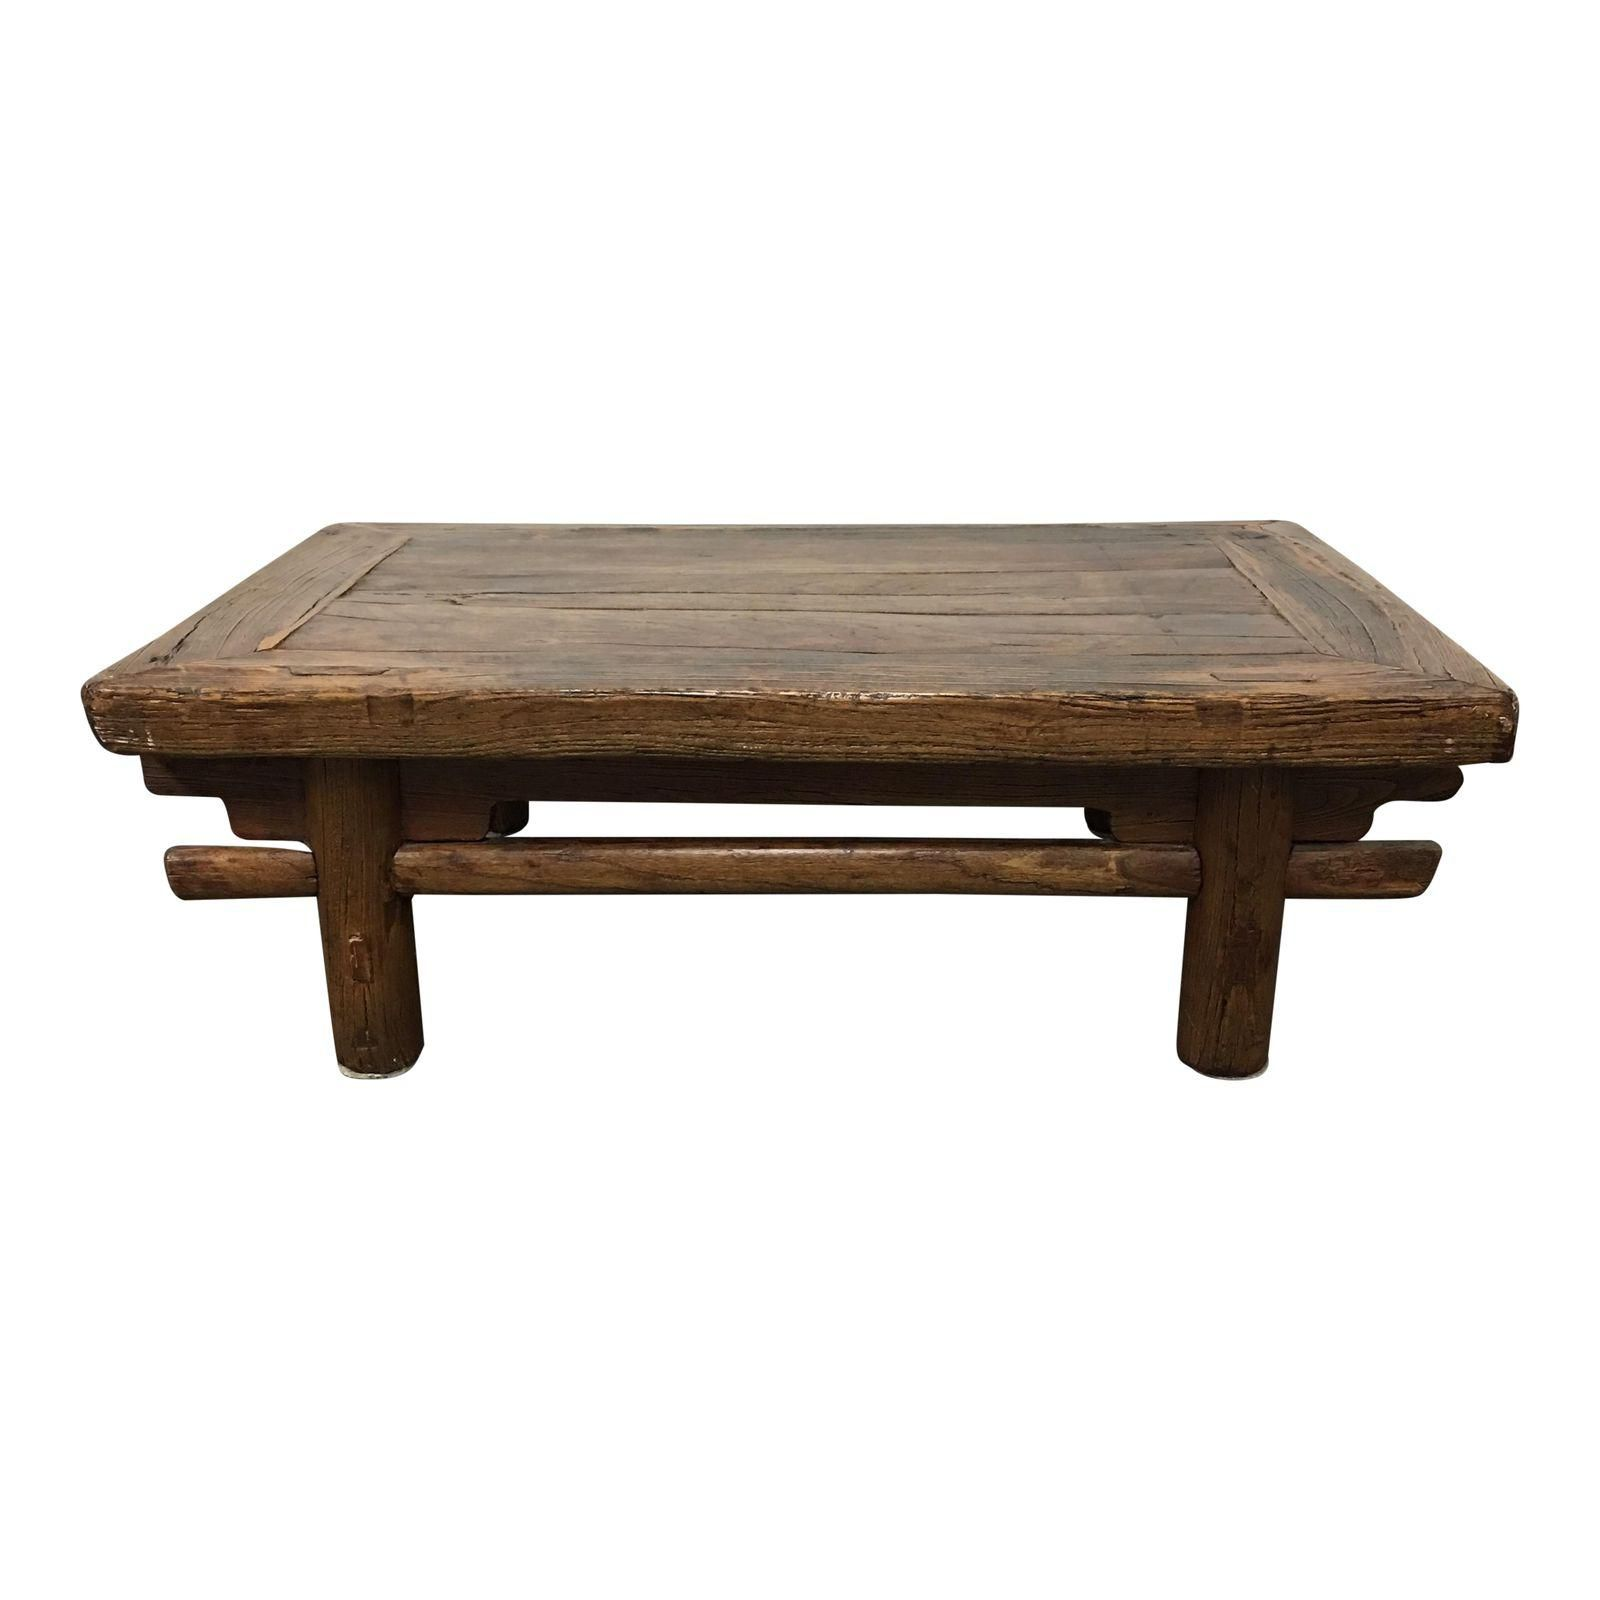 Antique Asian Low Coffee Table Low Coffee Table Coffee Table Table